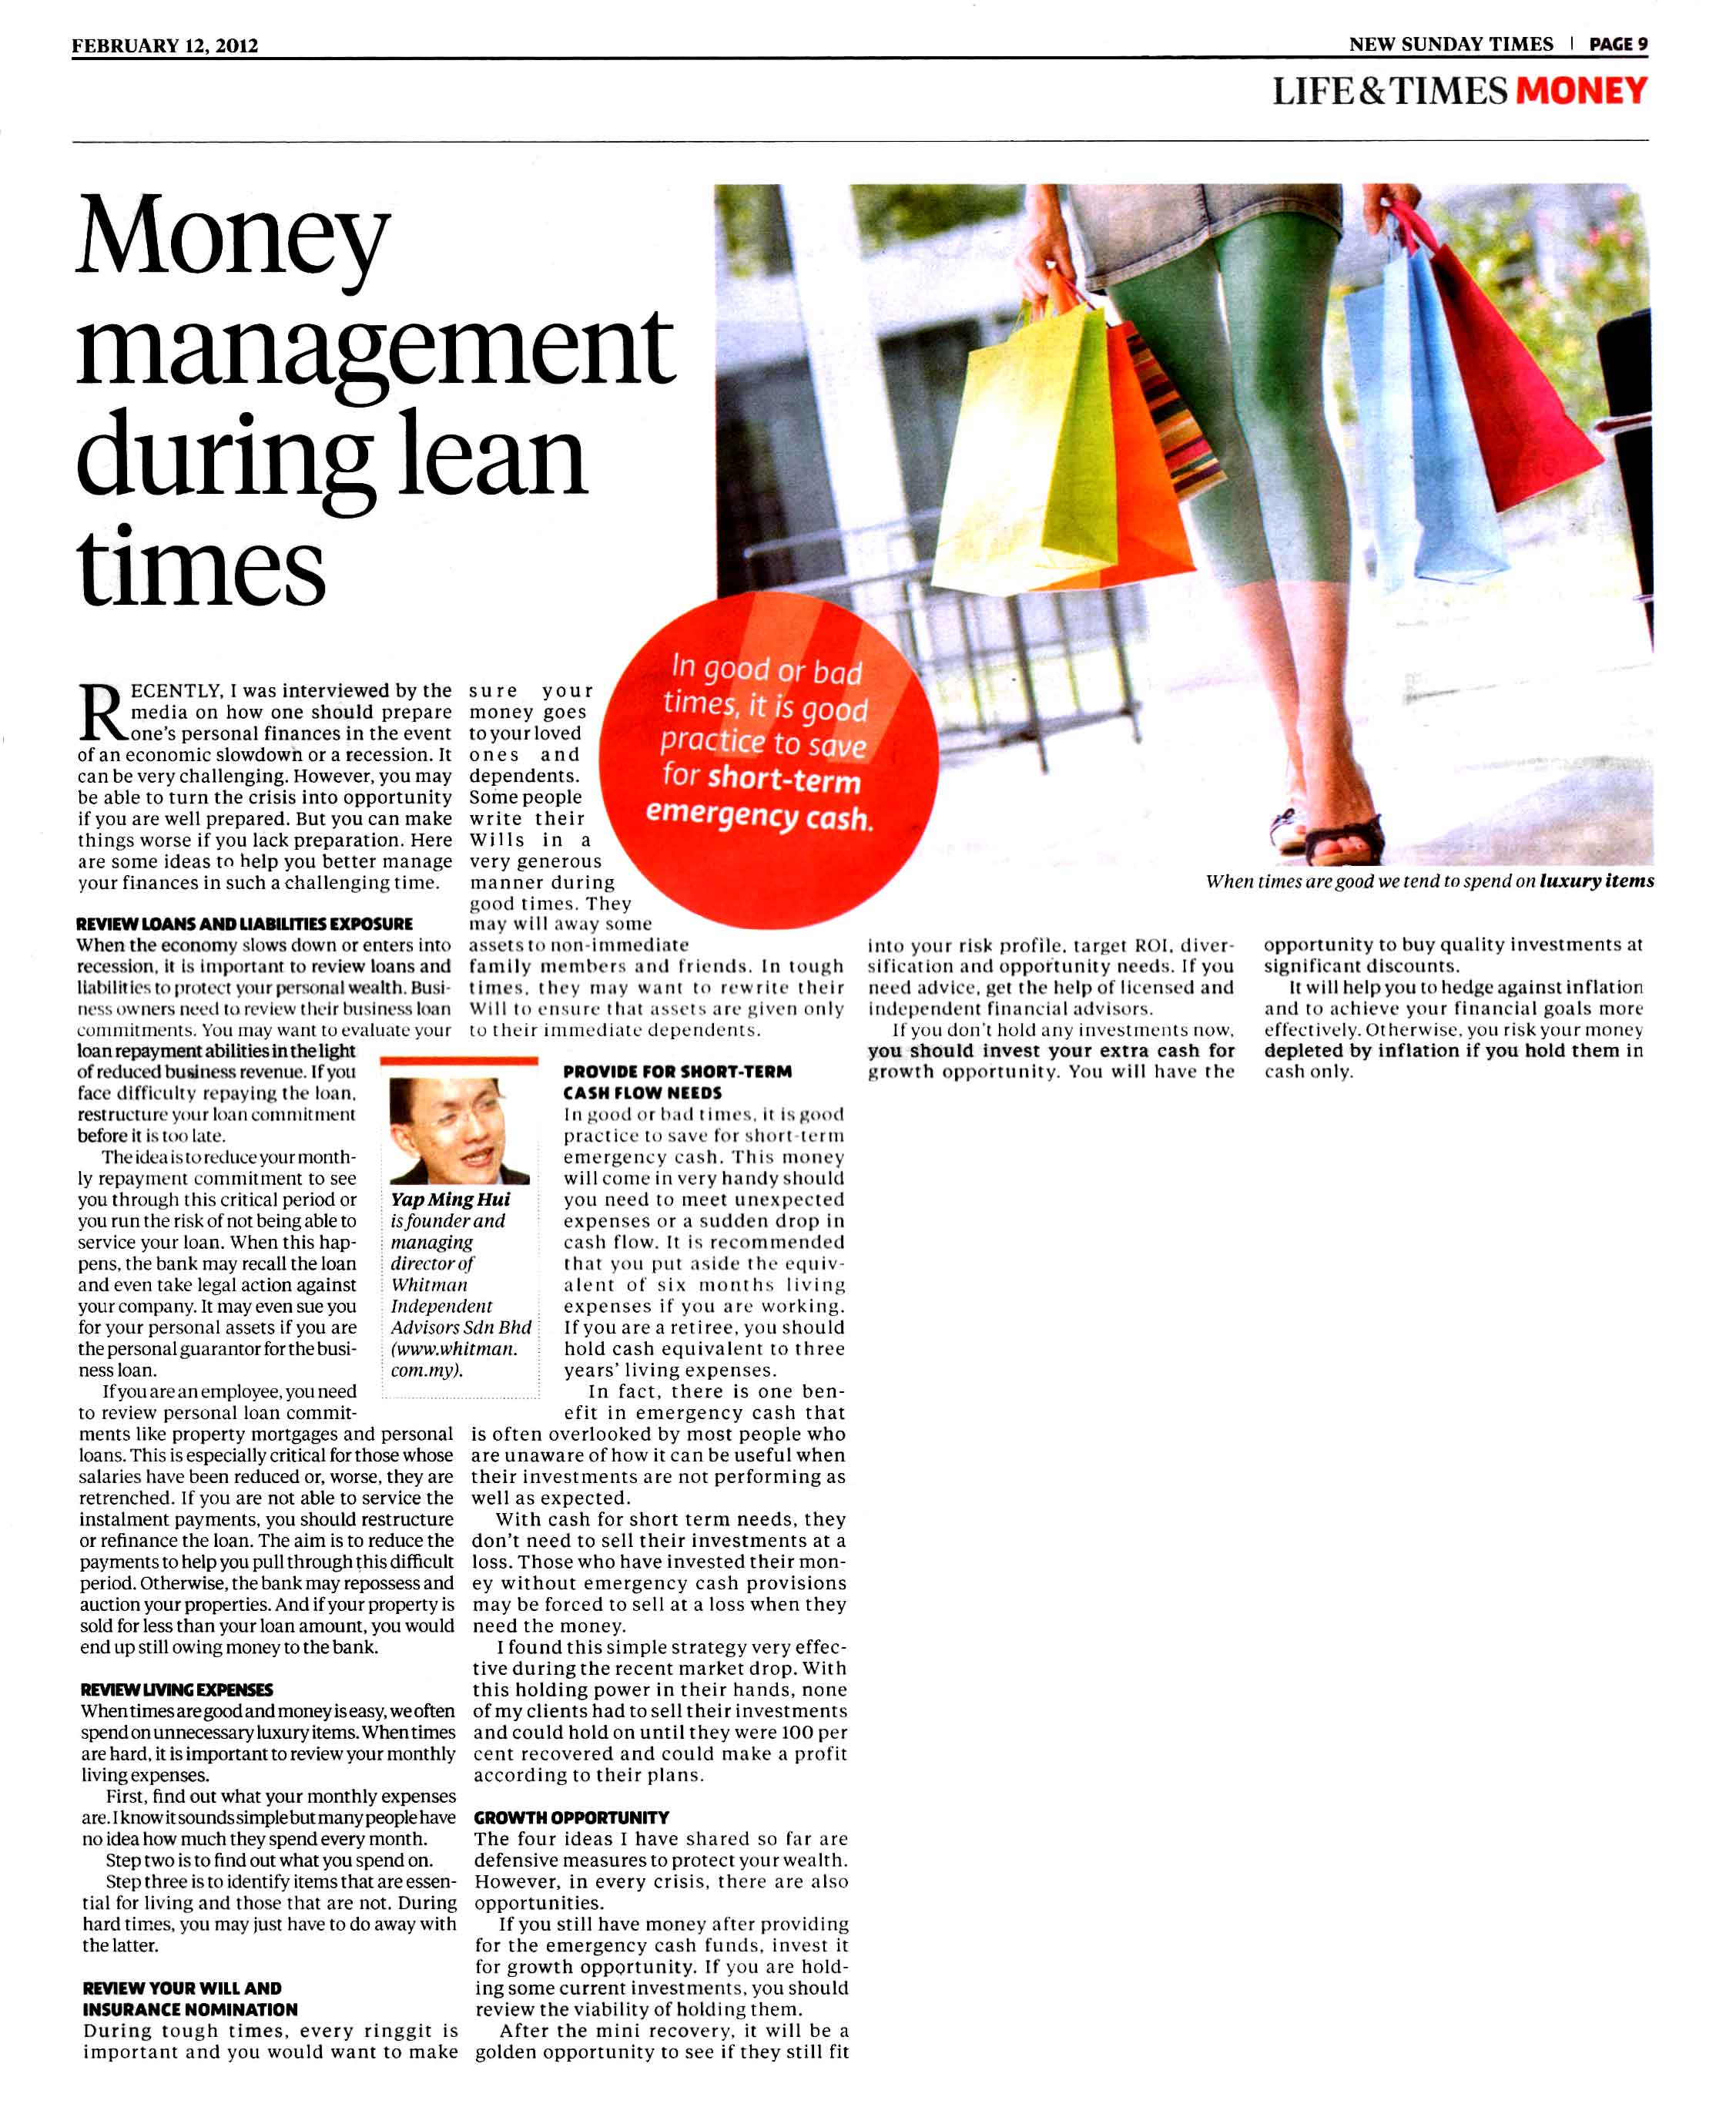 Money Management During Lean Times - 12 Feb 2012